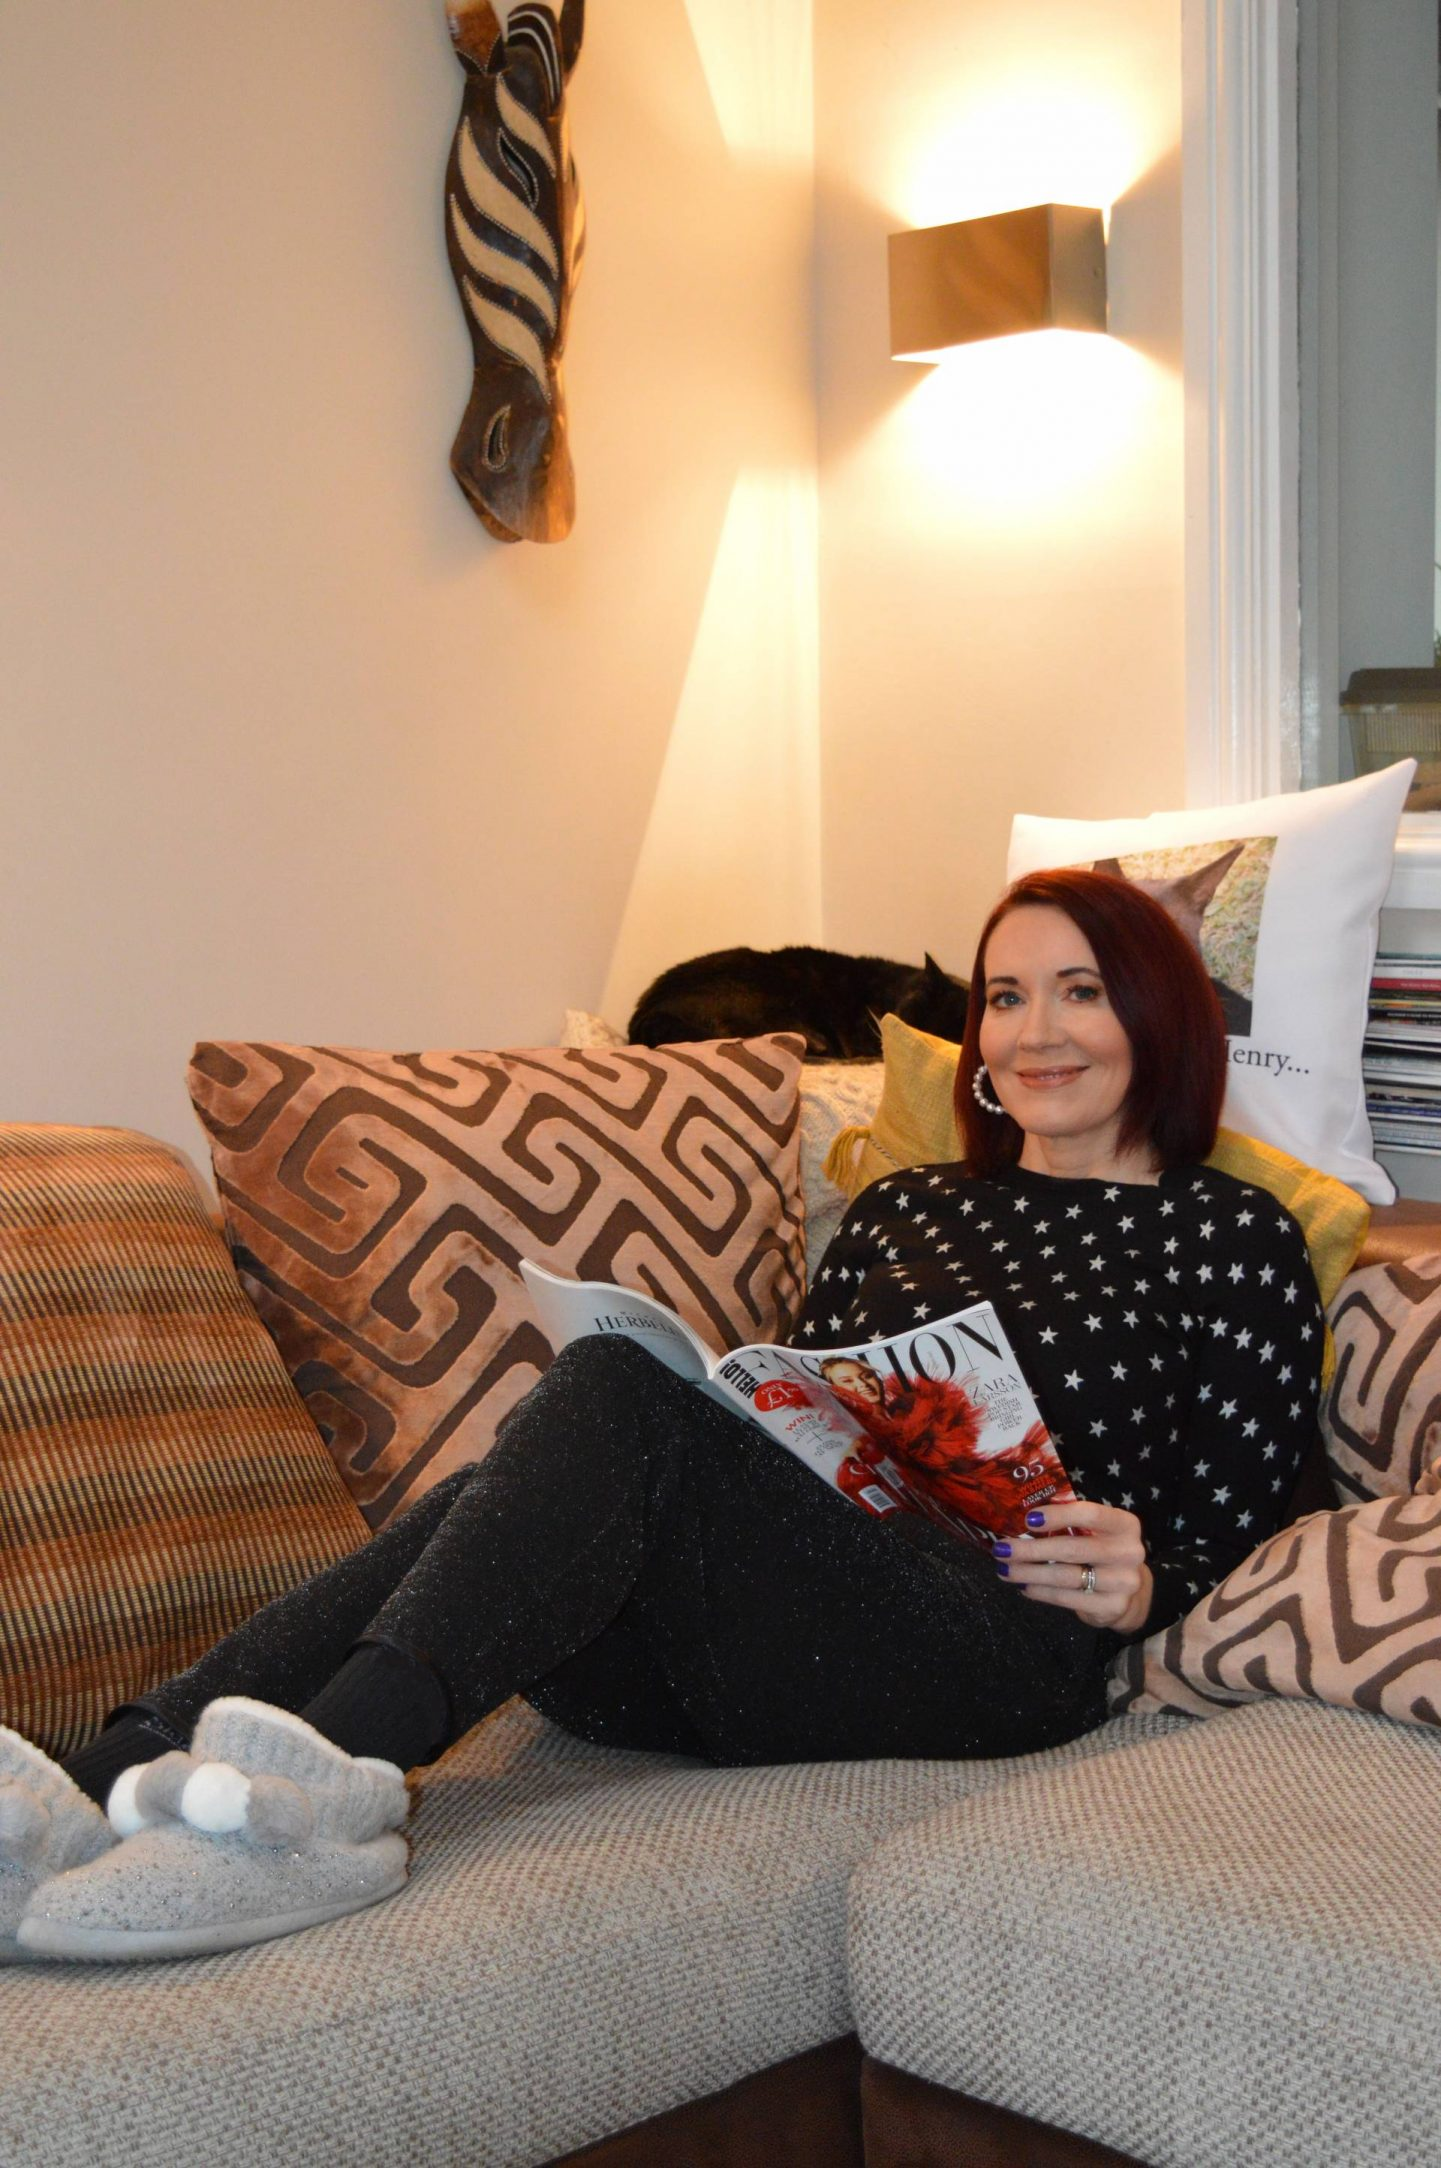 Lounging at Home, George at Asda black sparkly joggers, Marks & Spencer star print jumper